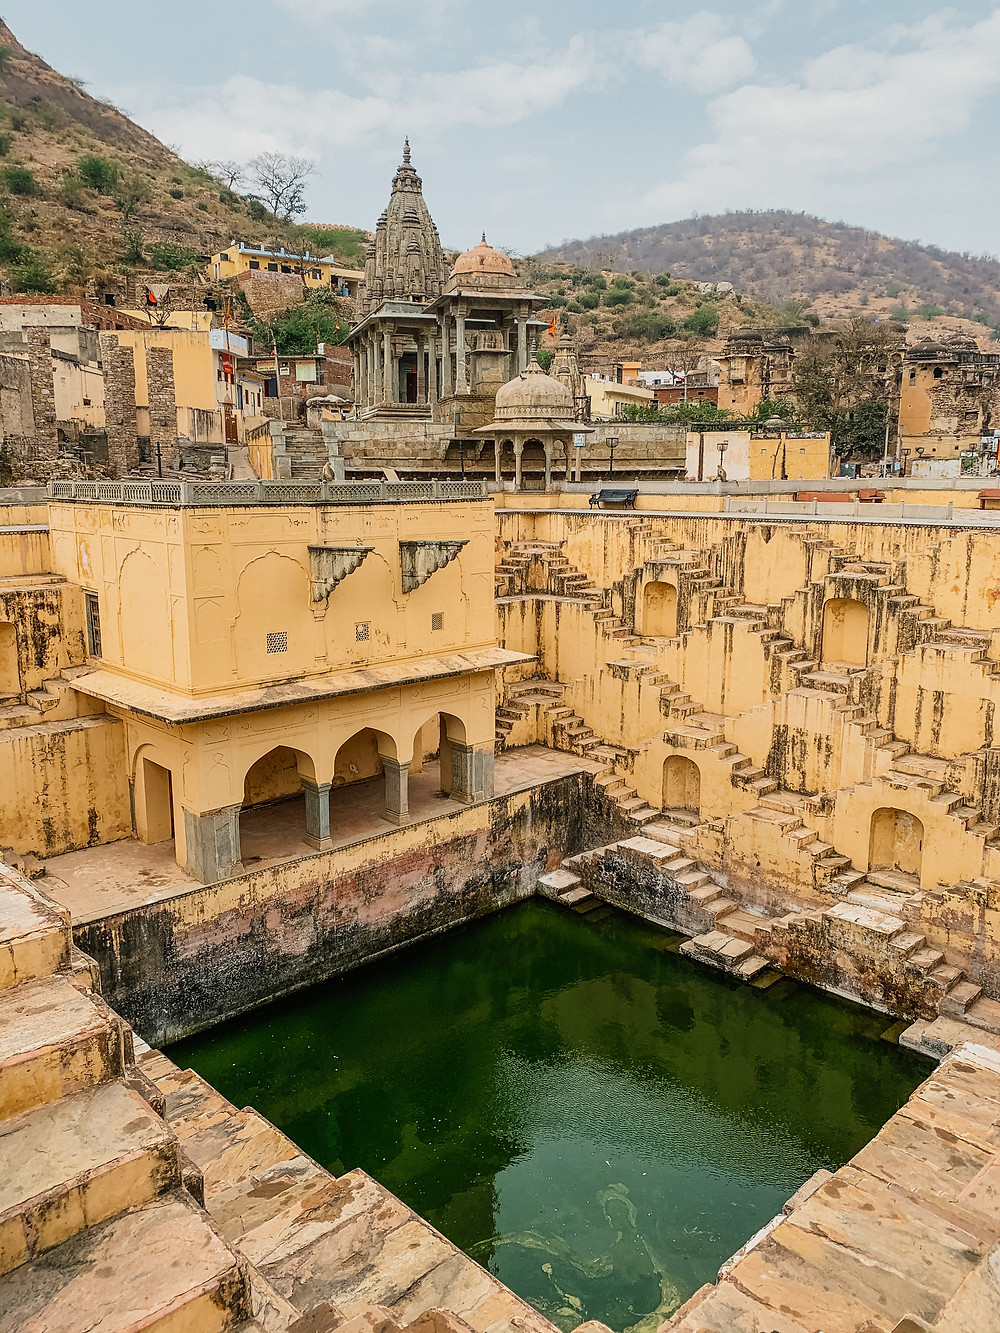 step wells jaipur, stairs jaipur, water well jaipur, instagram places in jaipur, pink steps in jaipur, free things to do in jaipur, what to see in jaipur